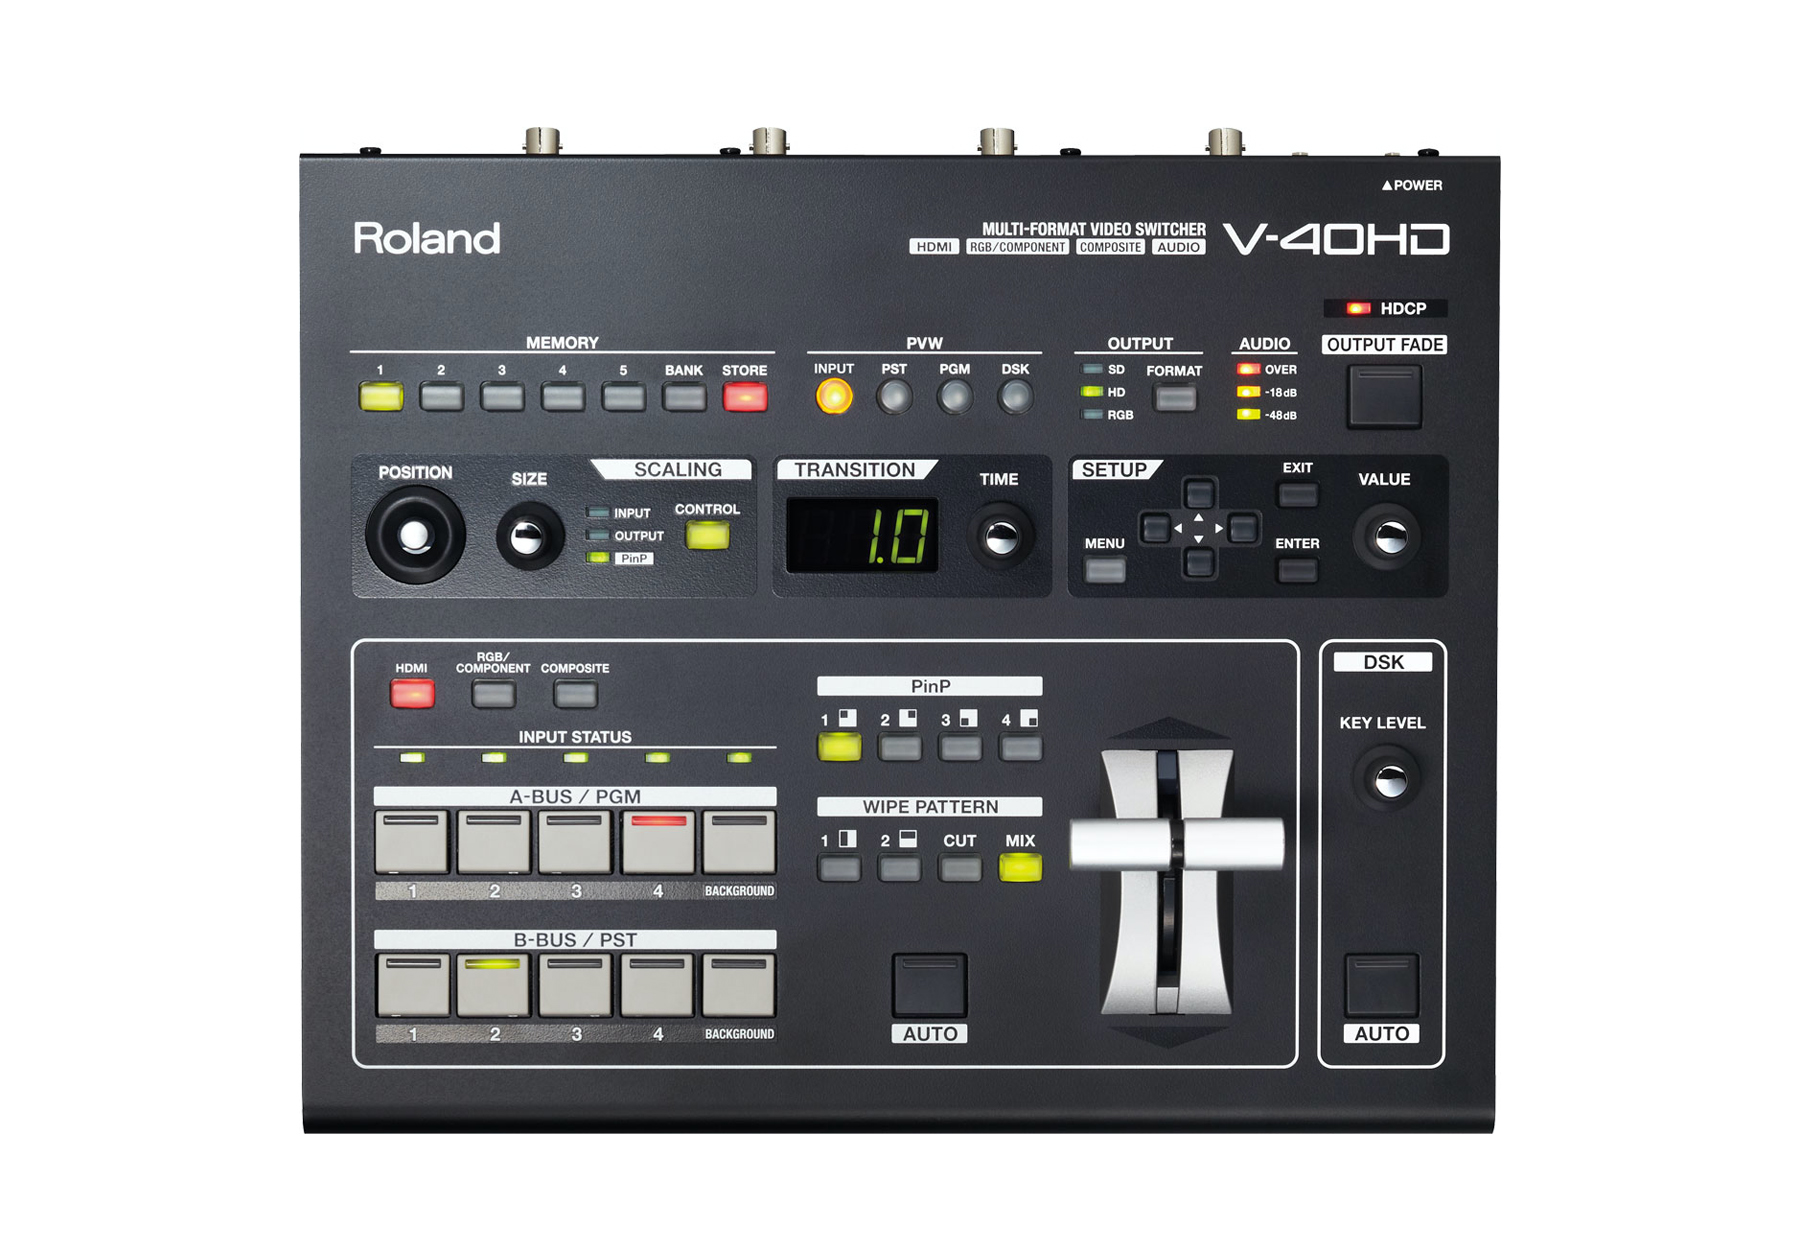 Hire AV equipment, video & playback equipment, BluRay player, DVD, Roland video mixers & video switchers in Cardiff, Swansea, Newport, Carmarthenshire, Pembrokeshire, South & West Wales